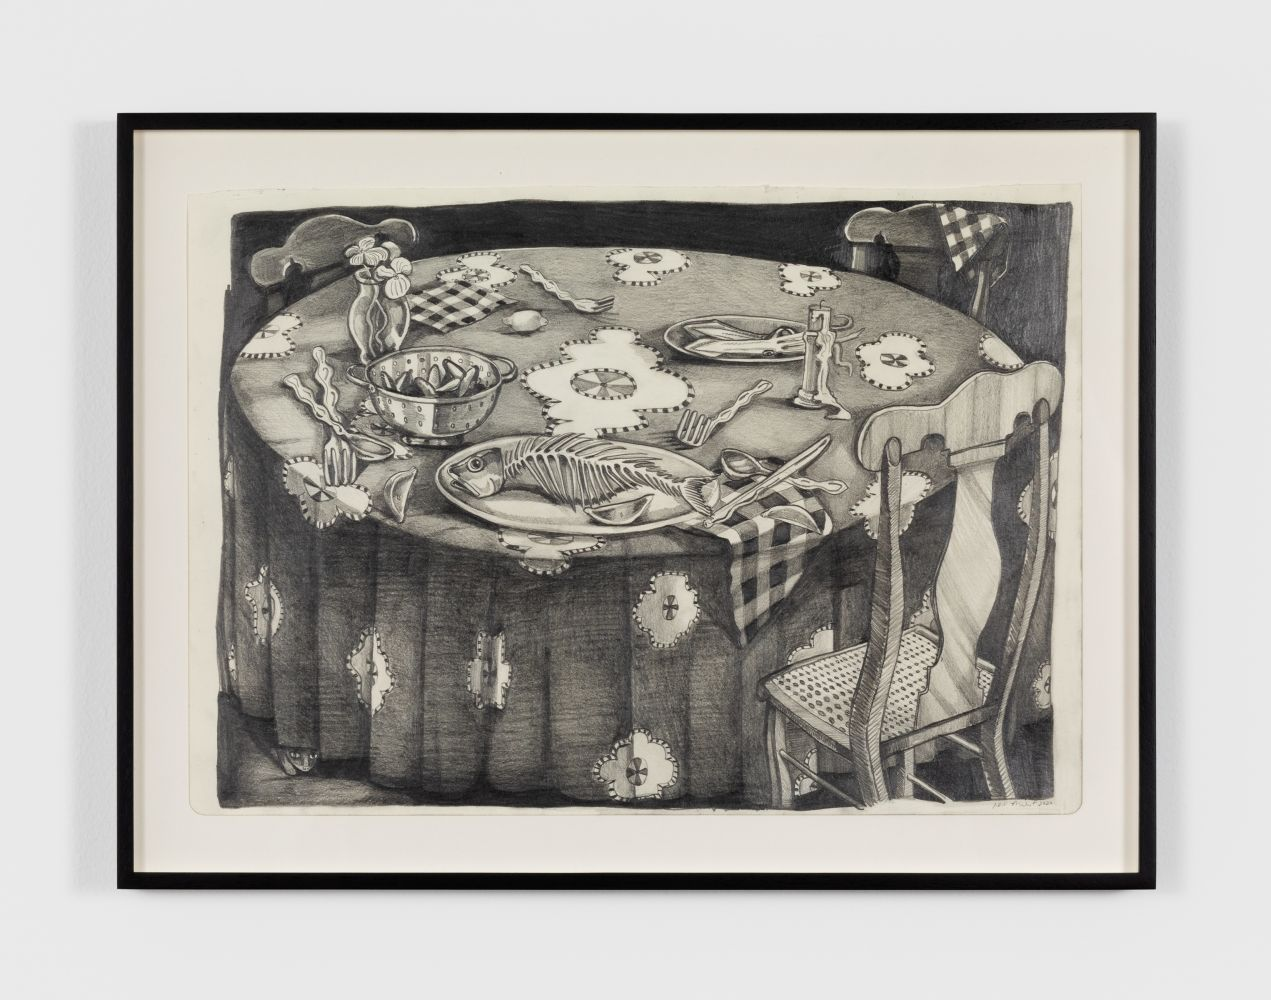 Nikki Maloof Table Study, 2020 Graphite on paper 12 x 18 in 30.5 x 45.7 cm (NMA20.005)